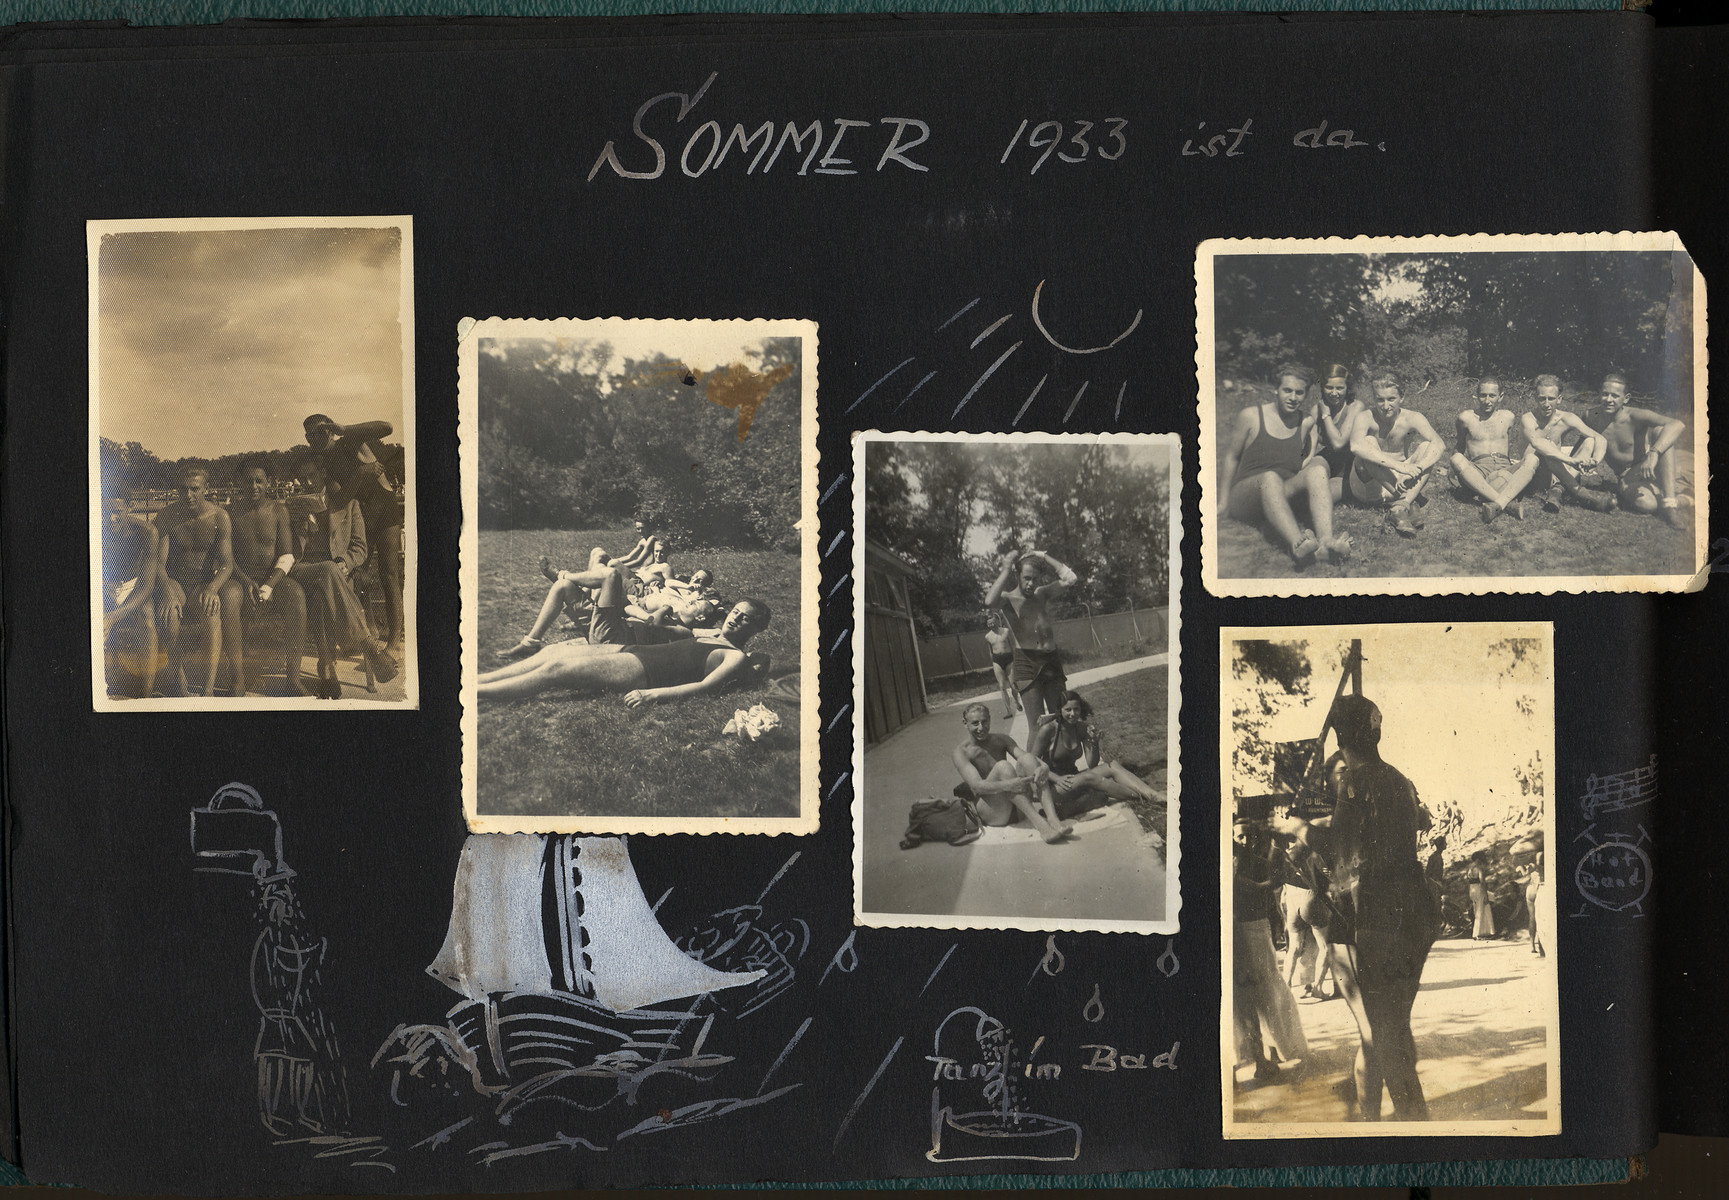 "Page of Otto Schenkelbach's photo album showing various summer pictures in swimsuits and in the grass.    The captions read, ""Sommer 1933 ist da"" [Summer of 1933 is here].  Another one says, ""Tanz im Bad"" [Dance in the bath]."